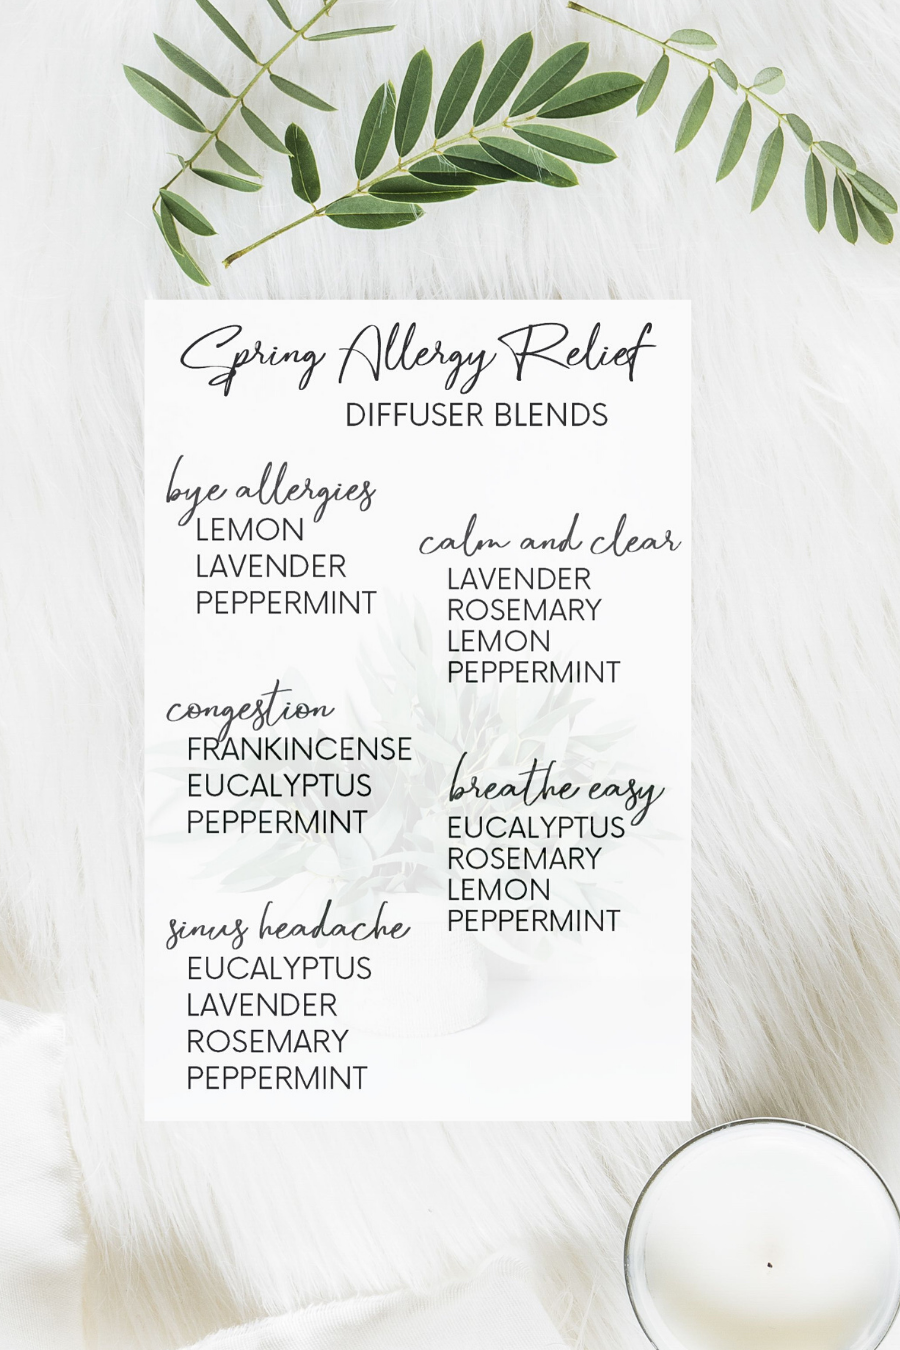 spring allergy relief diffuser blends